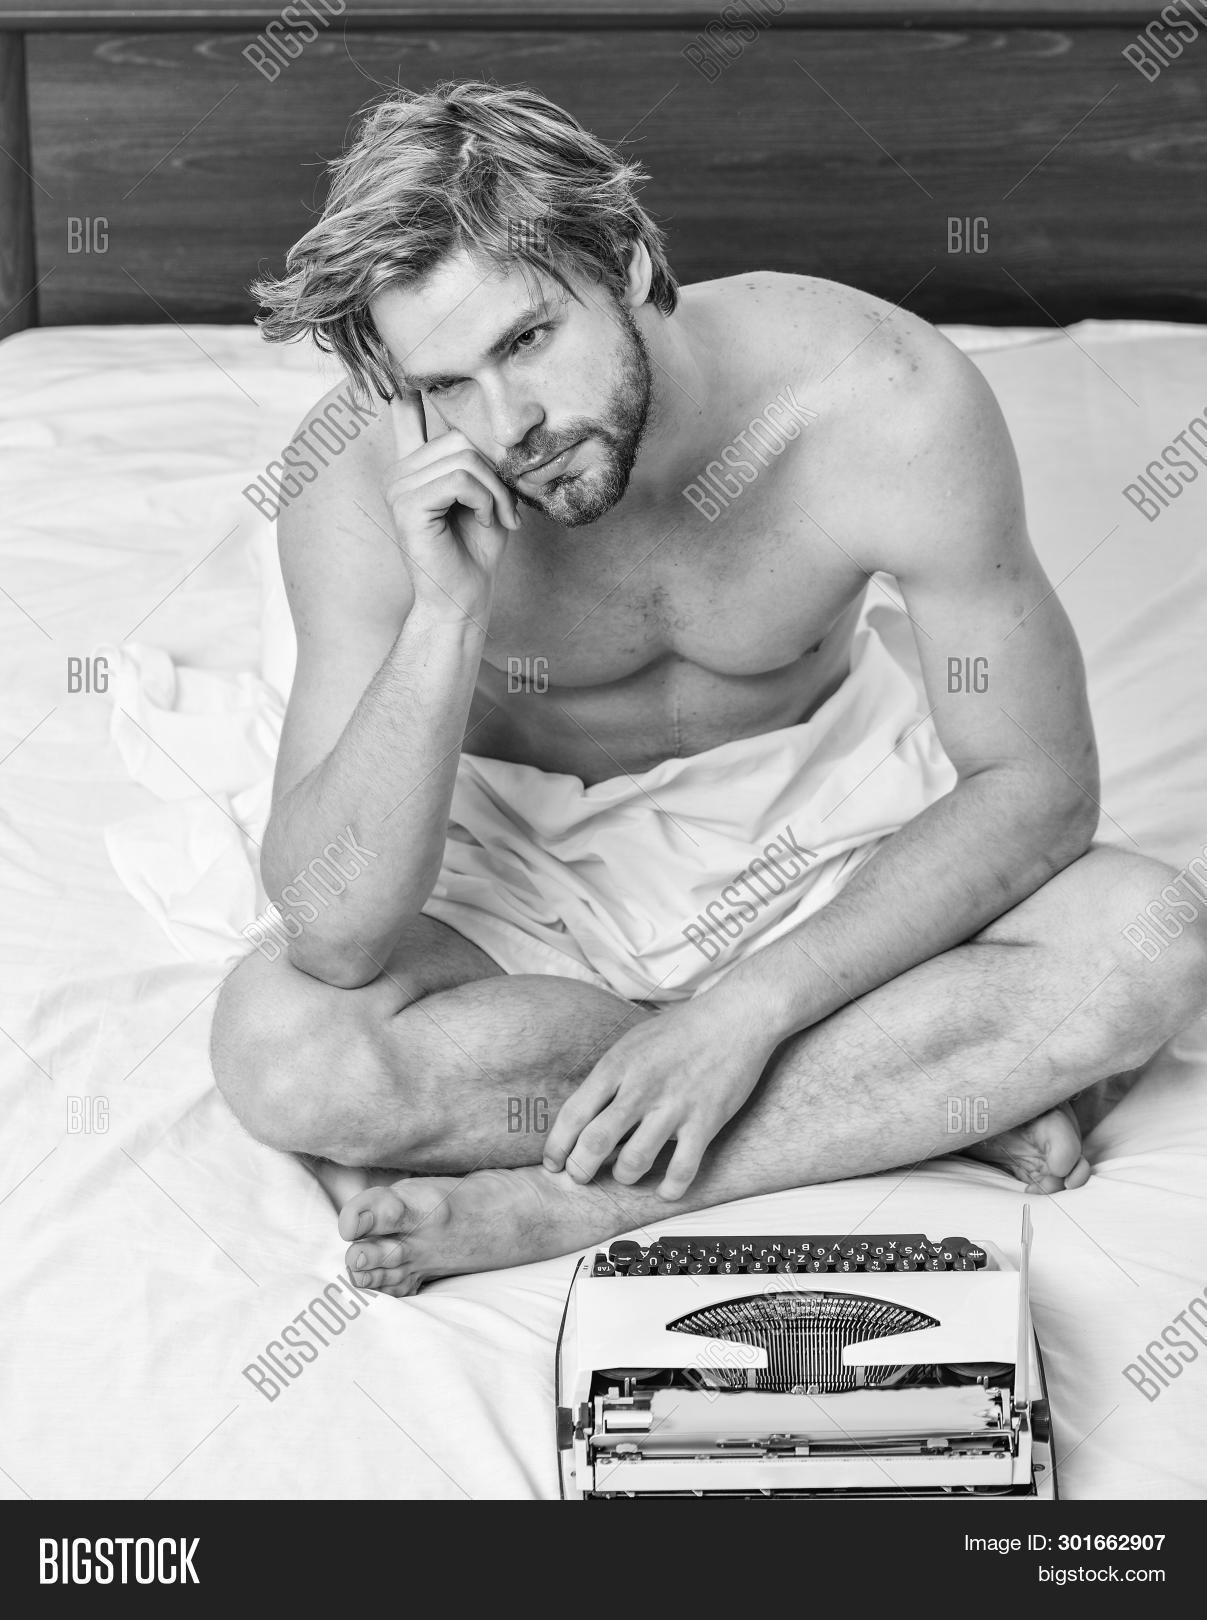 adult,attractive,author,awake,bearded,bed,bedclothes,bedroom,caucasian,chapter,concept,create,creativity,crisis,daily,digital,enjoy,feel,fresh,handsome,hipster,idea,inspiration,lack,leisure,looking,machine,man,manual,morning,need,novelist,relax,retro,routine,script,sheets,sleepy,typewriter,vintage,weekend,while,work,working,write,writer